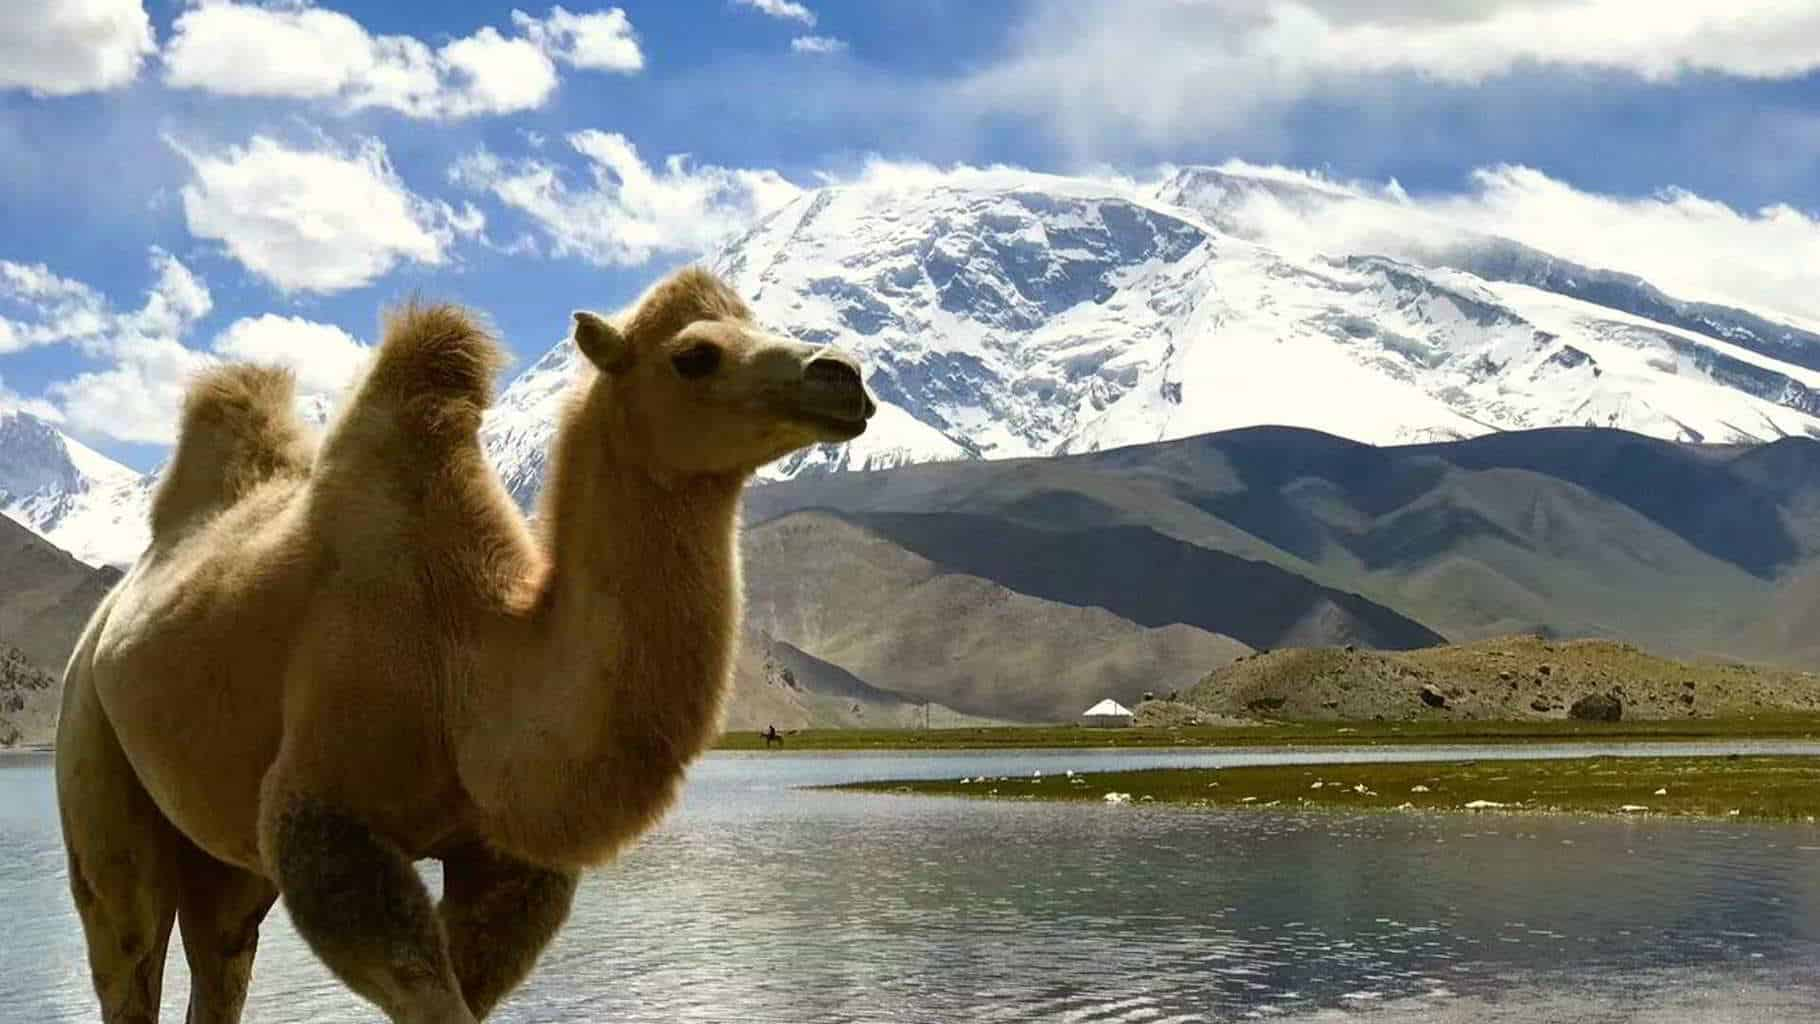 A Camel along the Karakoram highway in China close to Muztagh Ata peak close to Pakistan